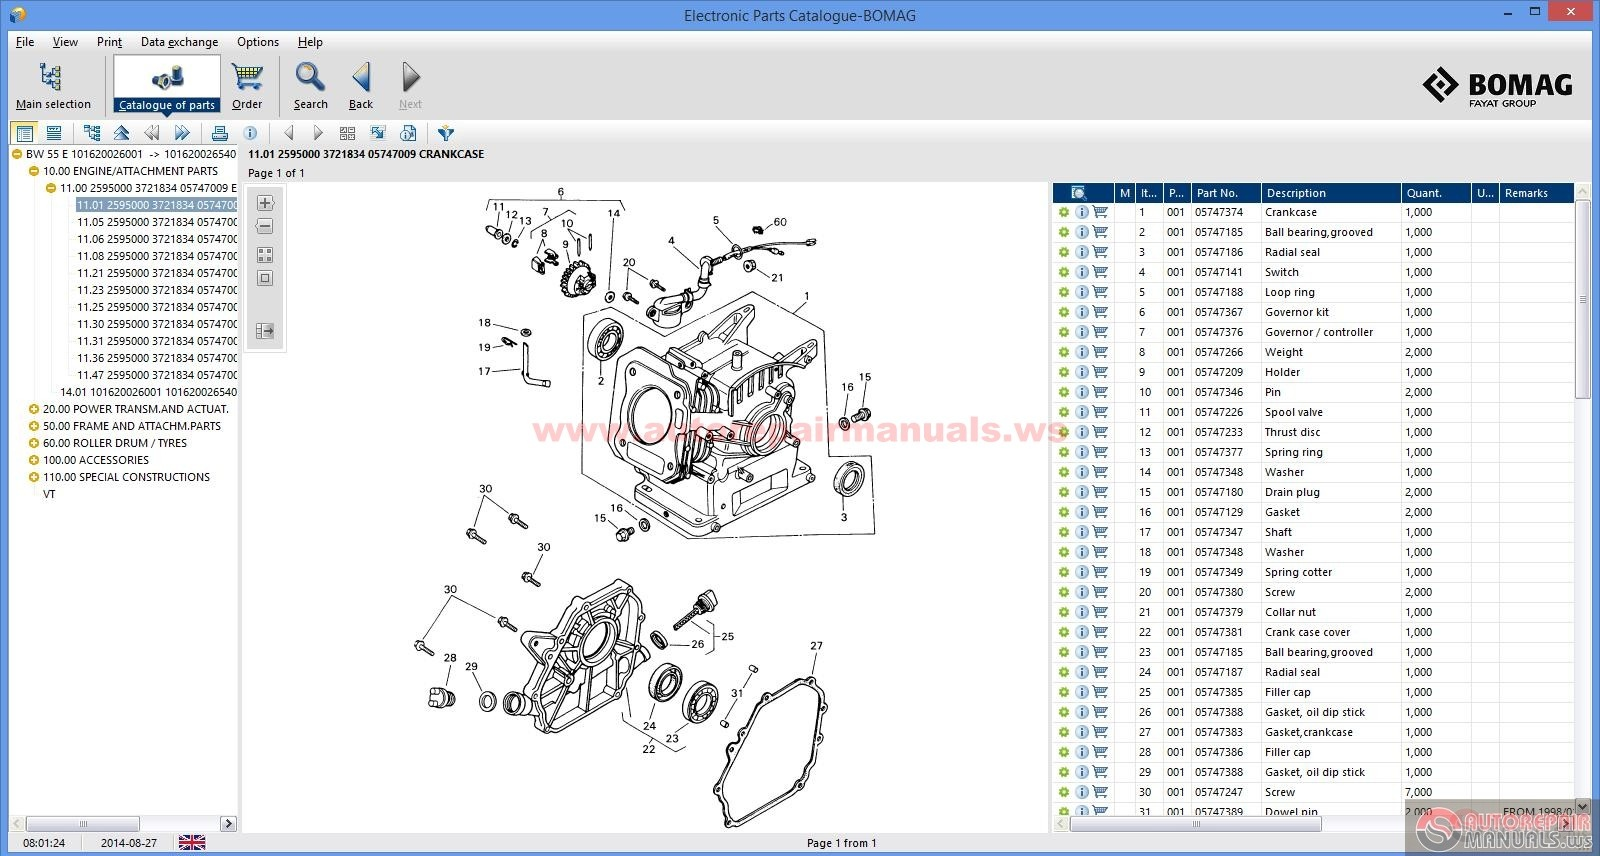 bomag wiring diagram with Jlg Wiring Harness on Clark Forklift Parts Pro Plus V452 06 2017 Full Instruction as well John Deere 1010 Dozer Parts Diagram further Bomag 2010 P 555 additionally Lull Wiring Diagrams together with Bomag.